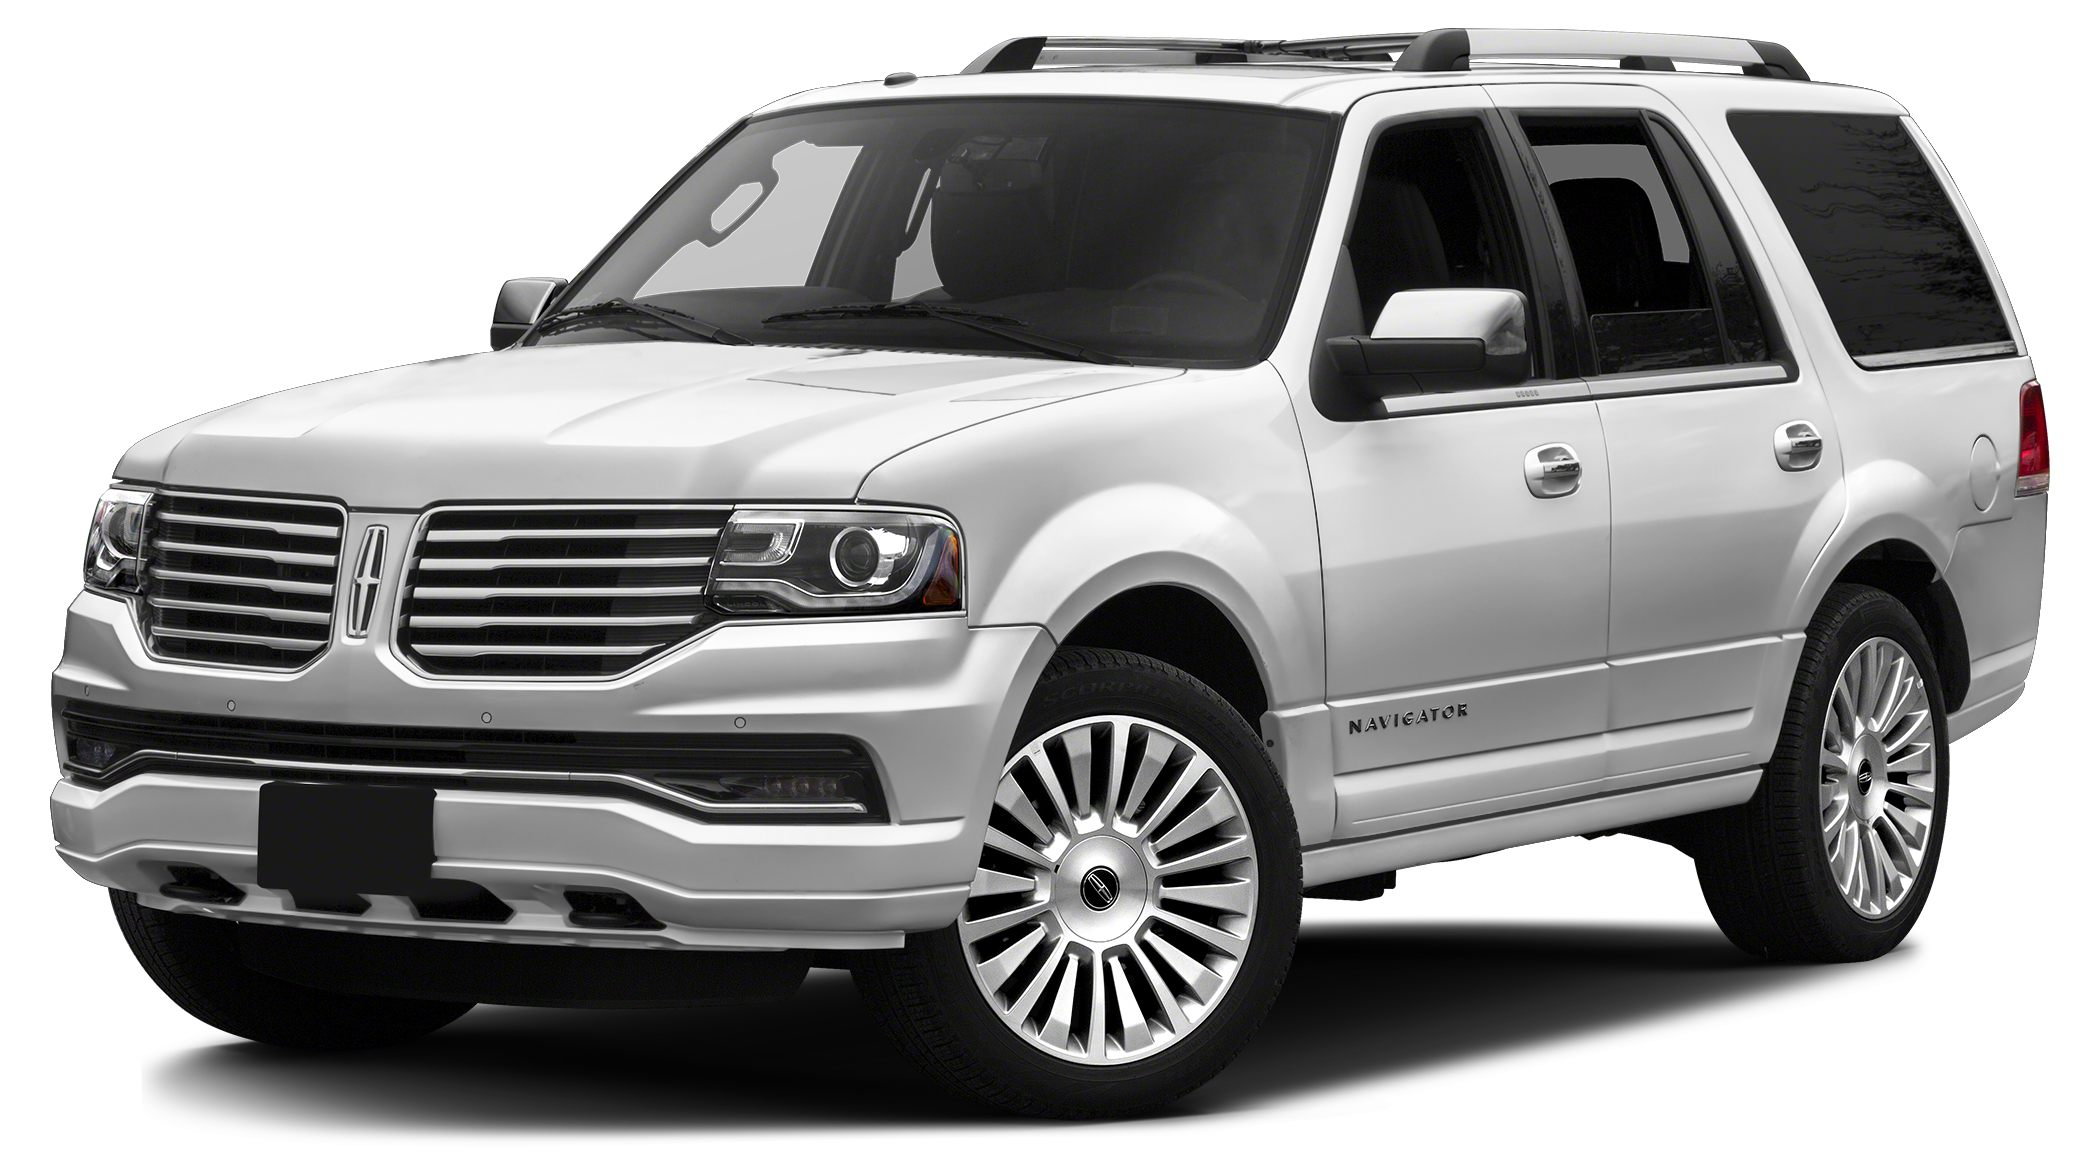 2015 Lincoln Navigator Base Here at Lake Keowee Ford our customers come first and our prices will